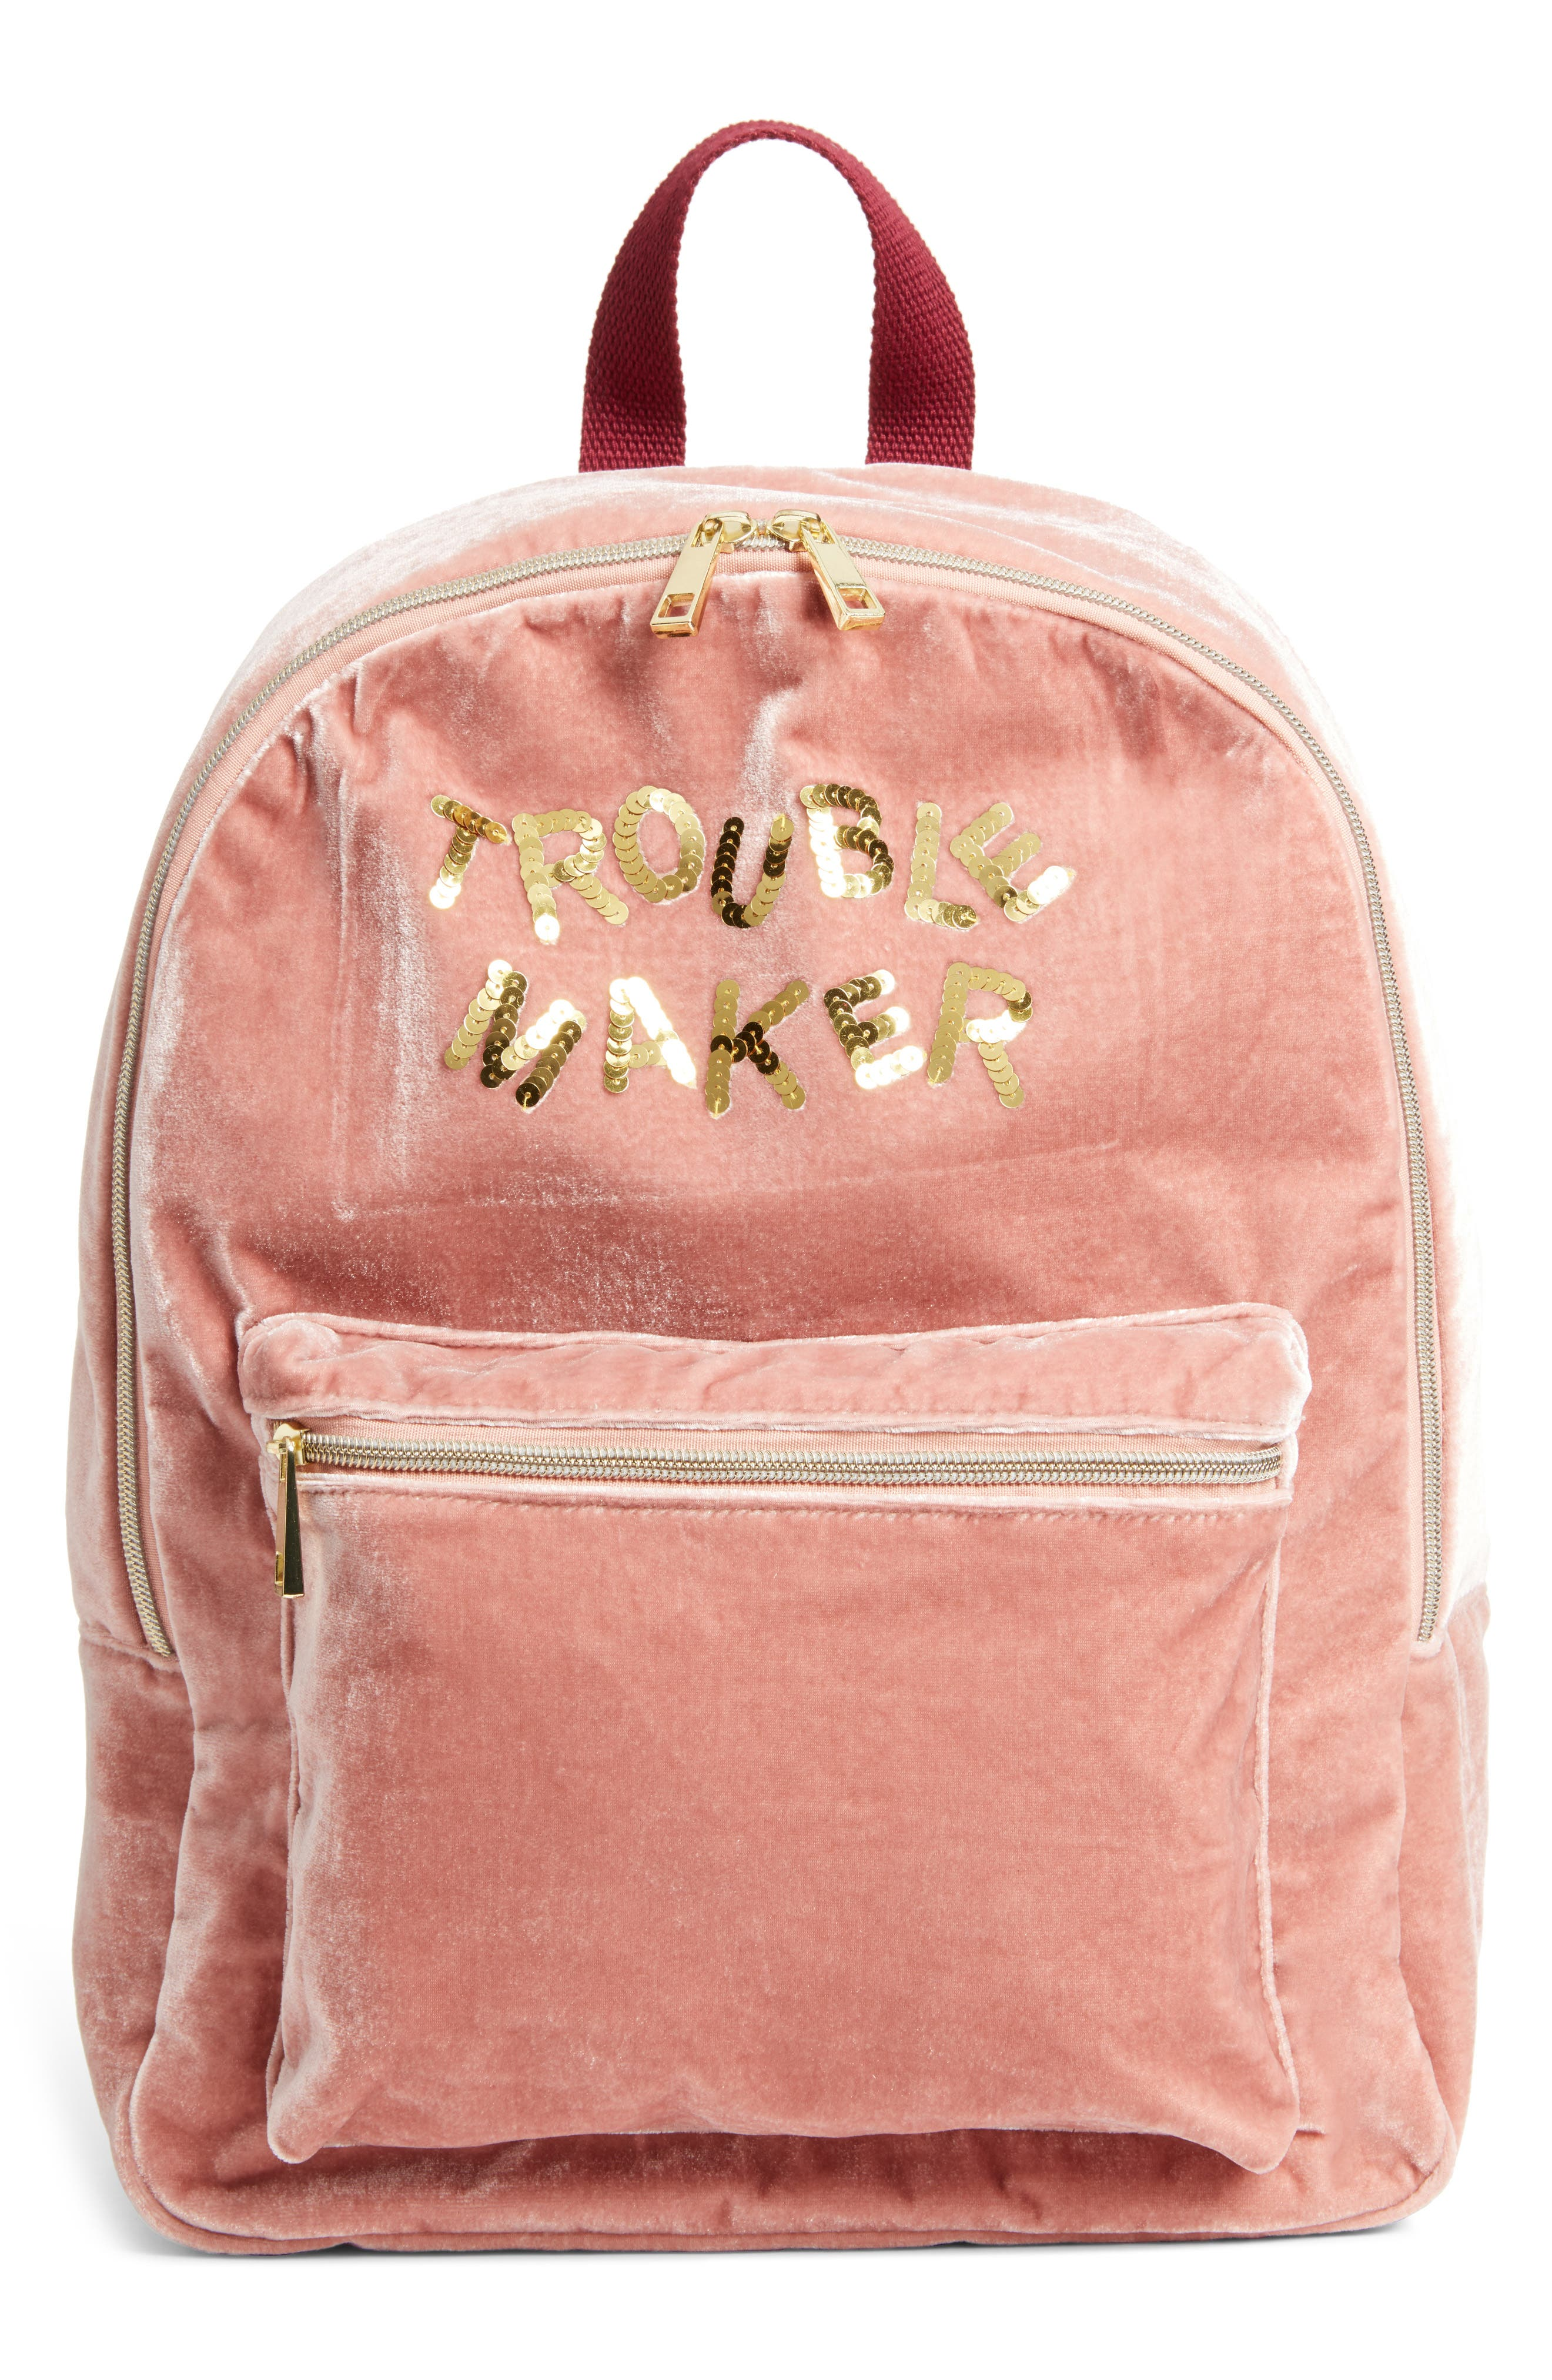 Trouble Maker Backpack,                         Main,                         color, Blush